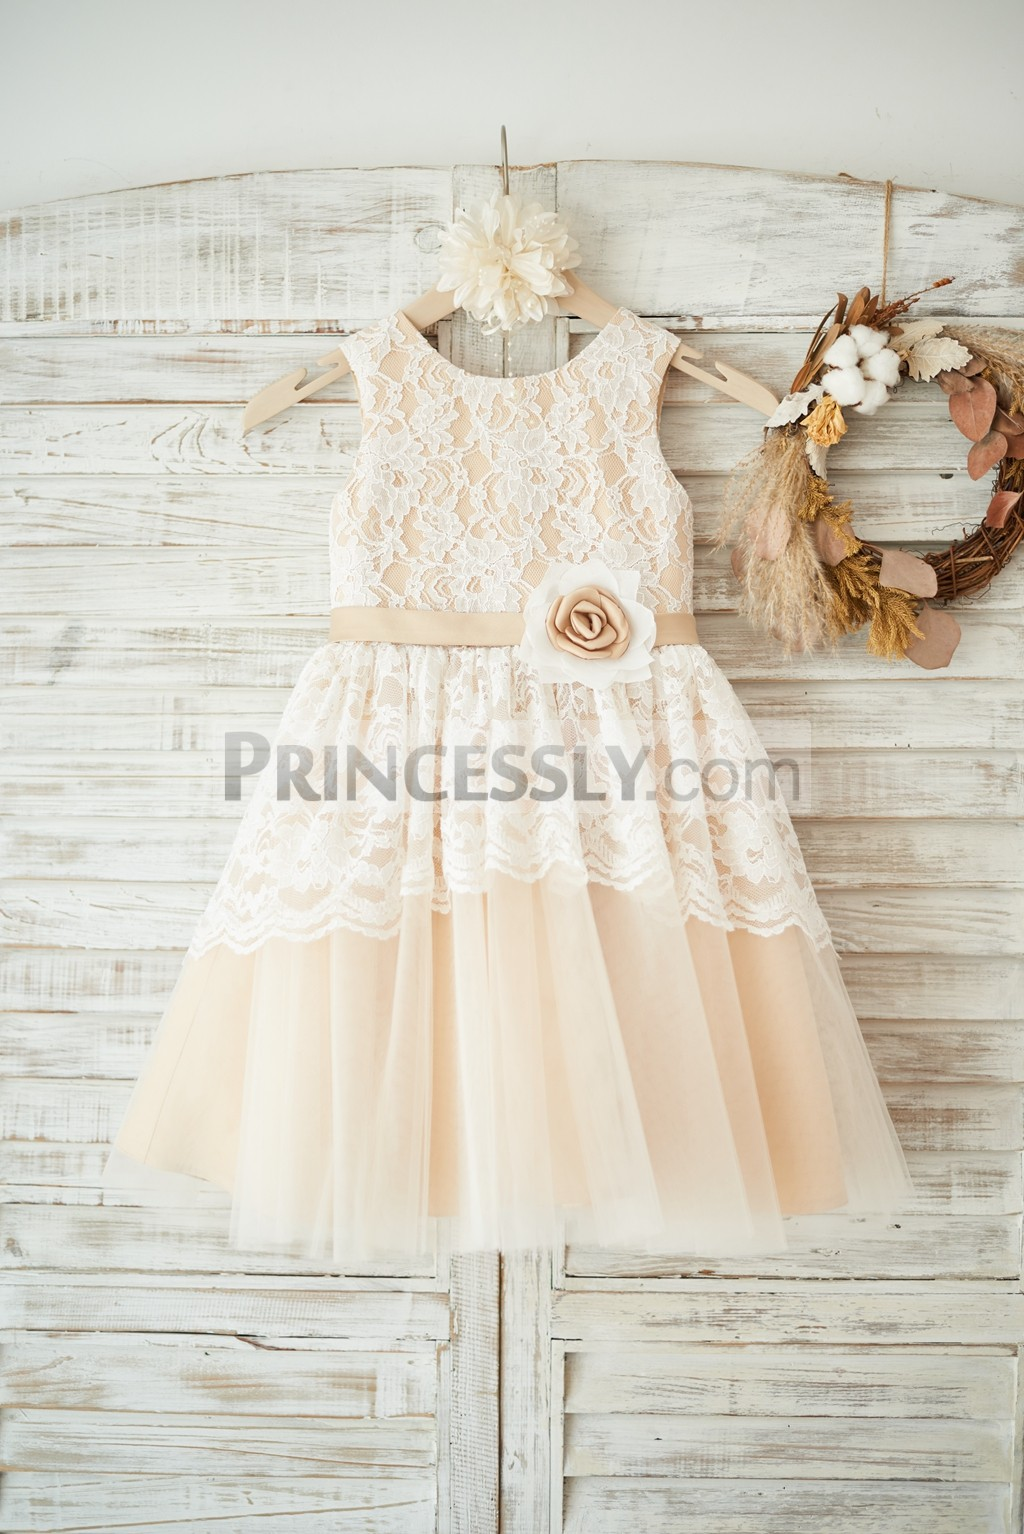 Ivory lace overlay champagne tulle wedding little girl dress